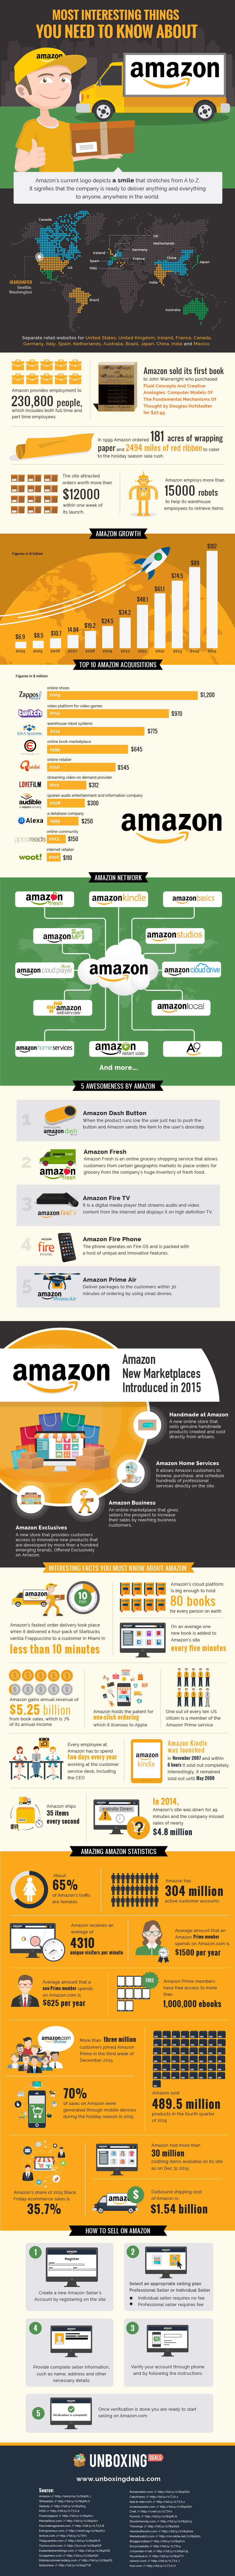 Amazon Facts & Figures - Quelle: http://www.unboxingdeals.com